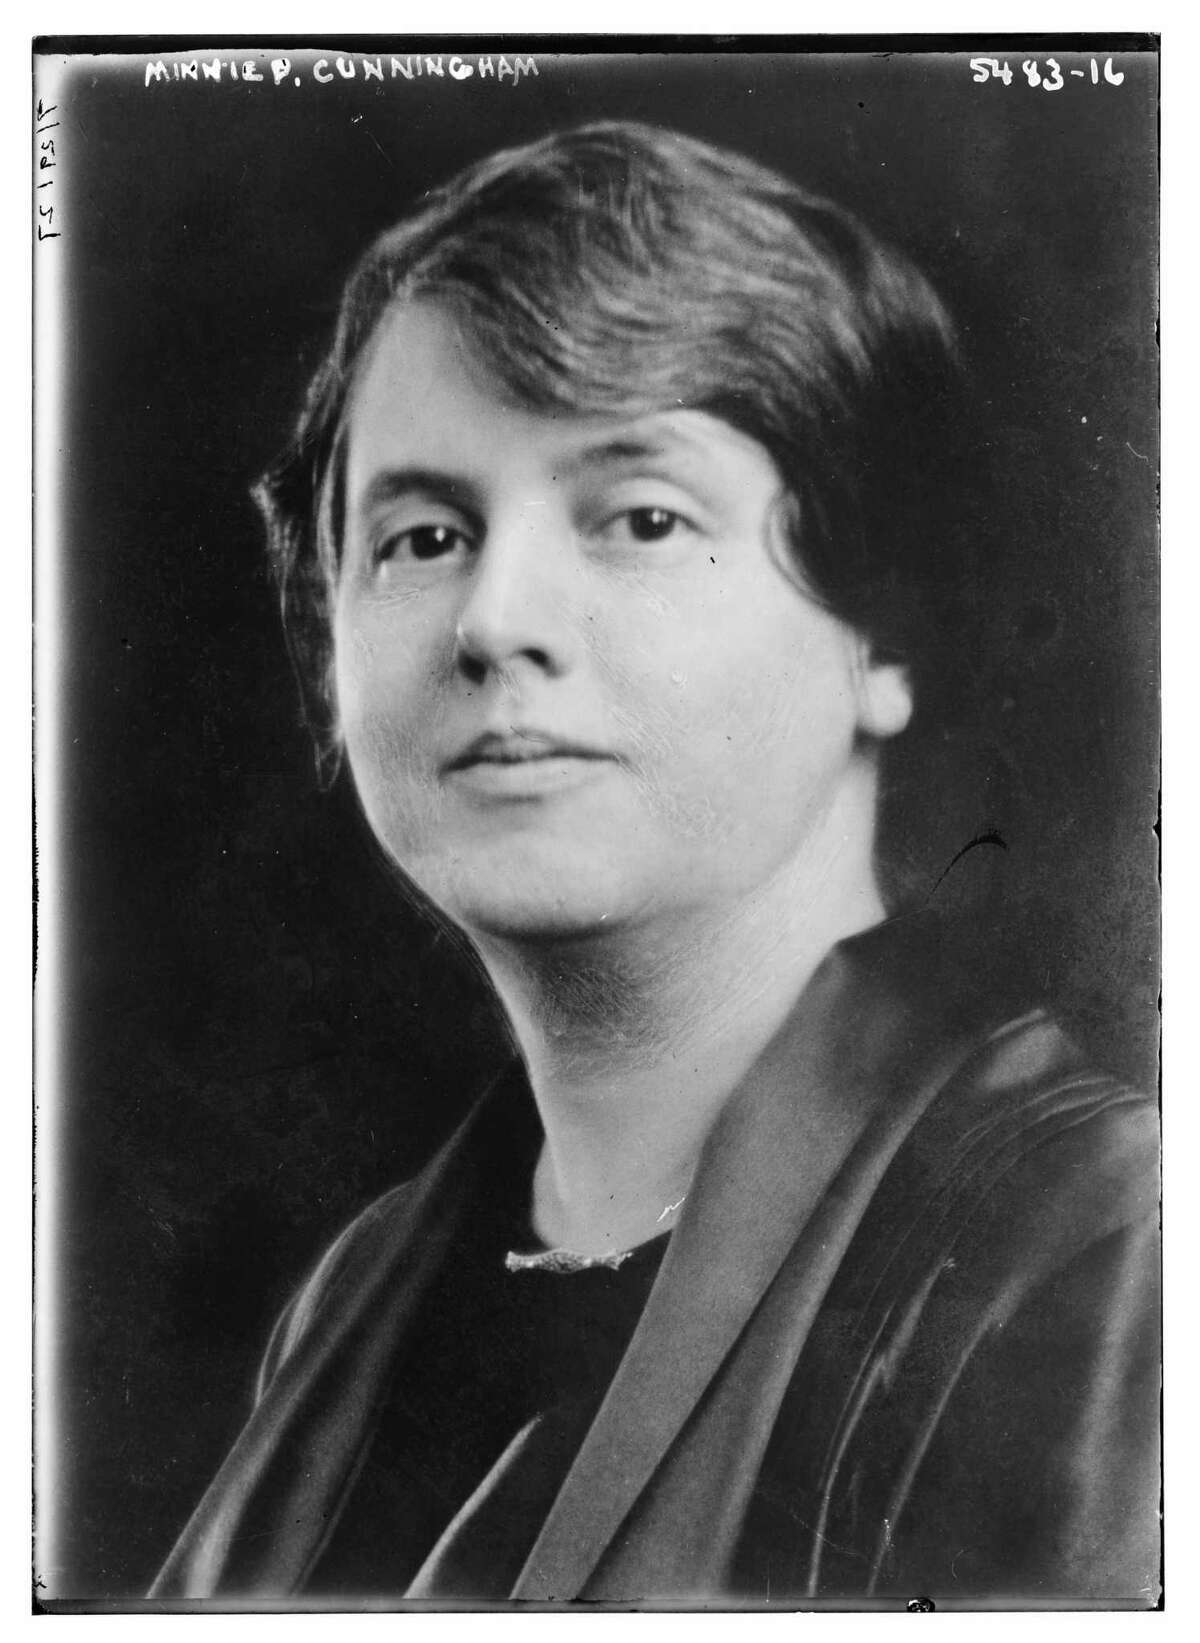 Minnie Fisher Cunningham, executive secretary of the League of Women Voters.